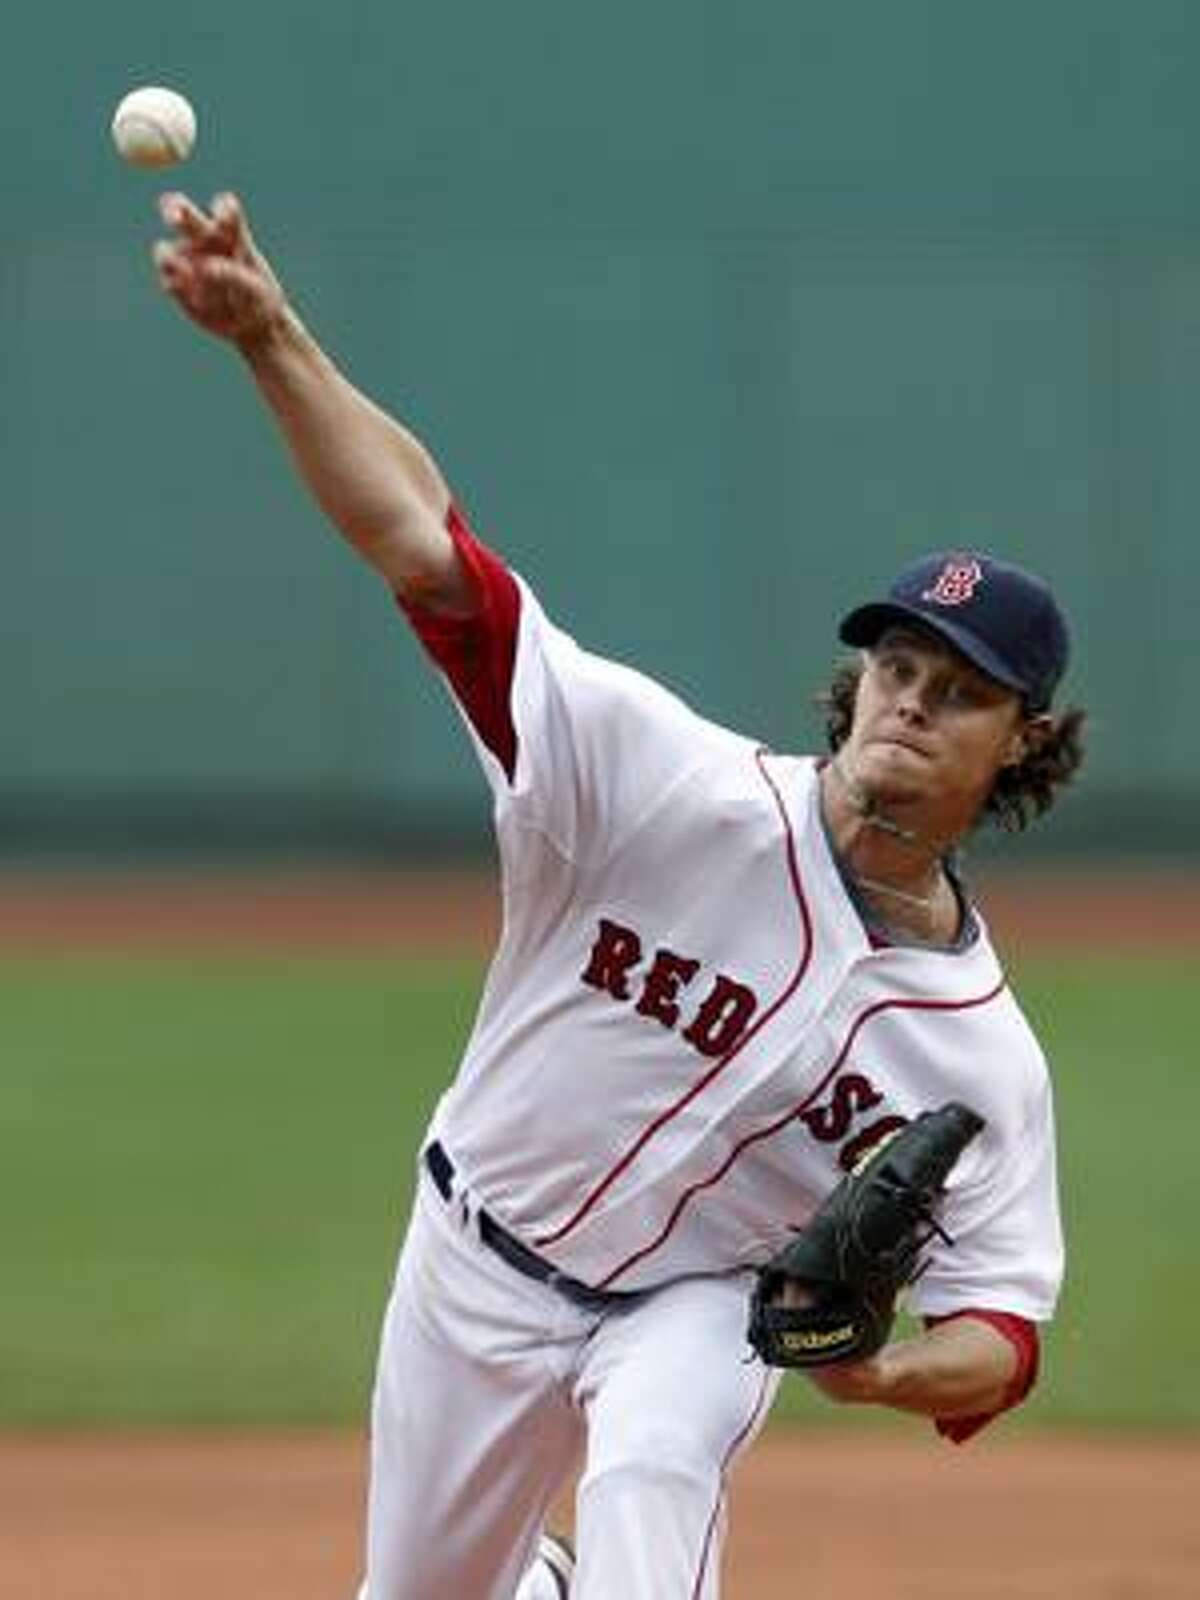 Boston Red Sox's Clay Buchholz pitches in the first inning of a baseball game against the Toronto Blue Jays in Boston, Sunday, Aug. 22, 2010. Buchholz pitched six innings of five-hit ball to lower his AL-best ERA to 2.26. The Red Sox won 5-0. (AP Photo/Michael Dwyer)